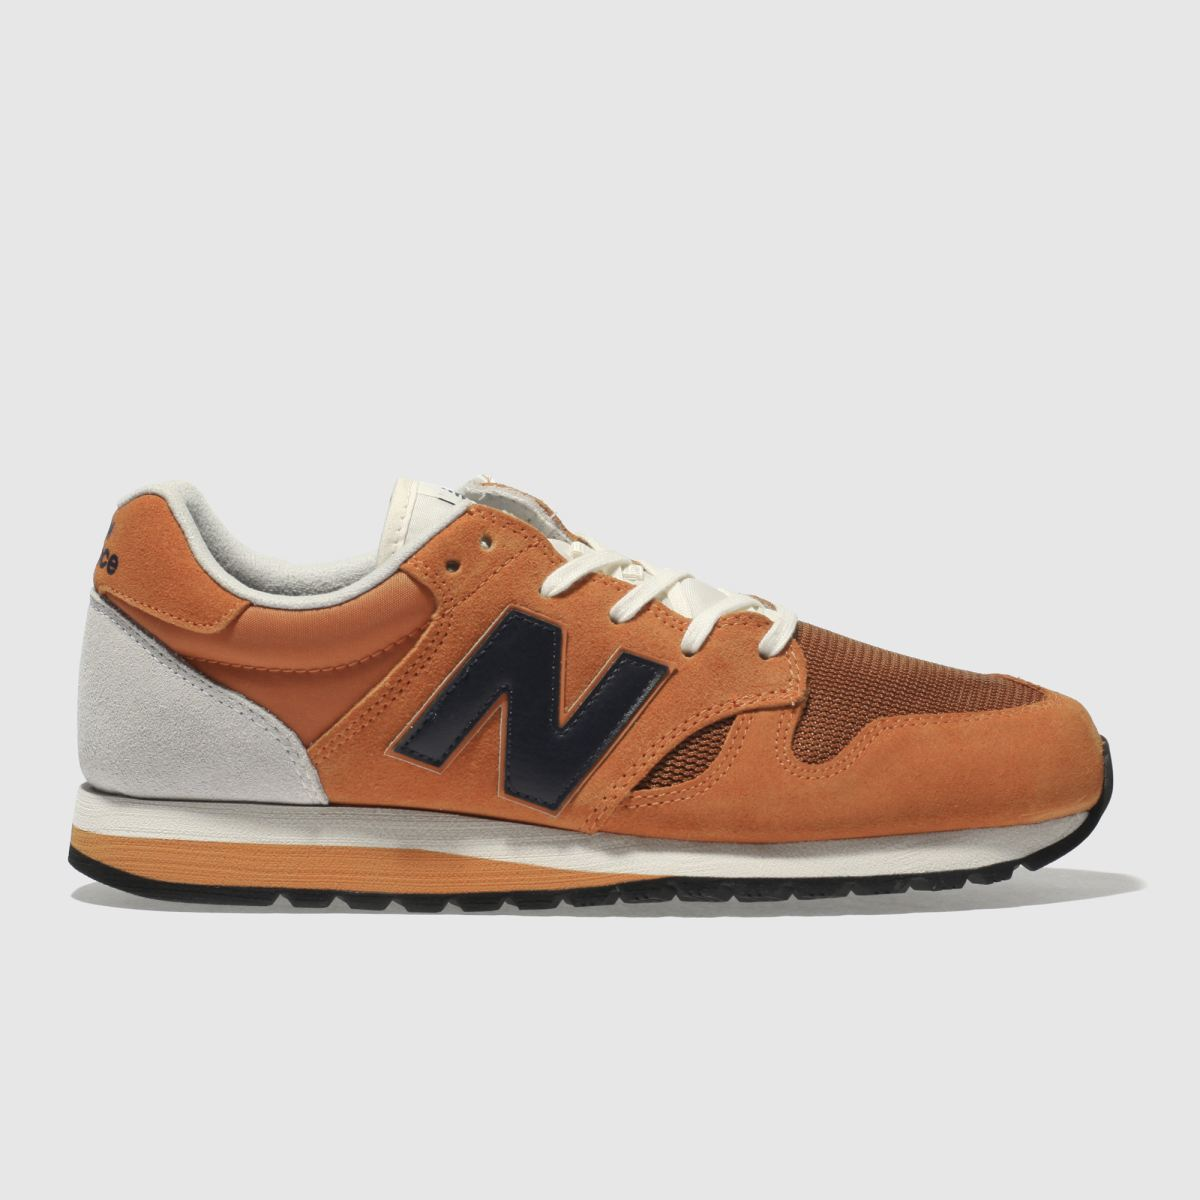 New Balance Orange 520 Trainers